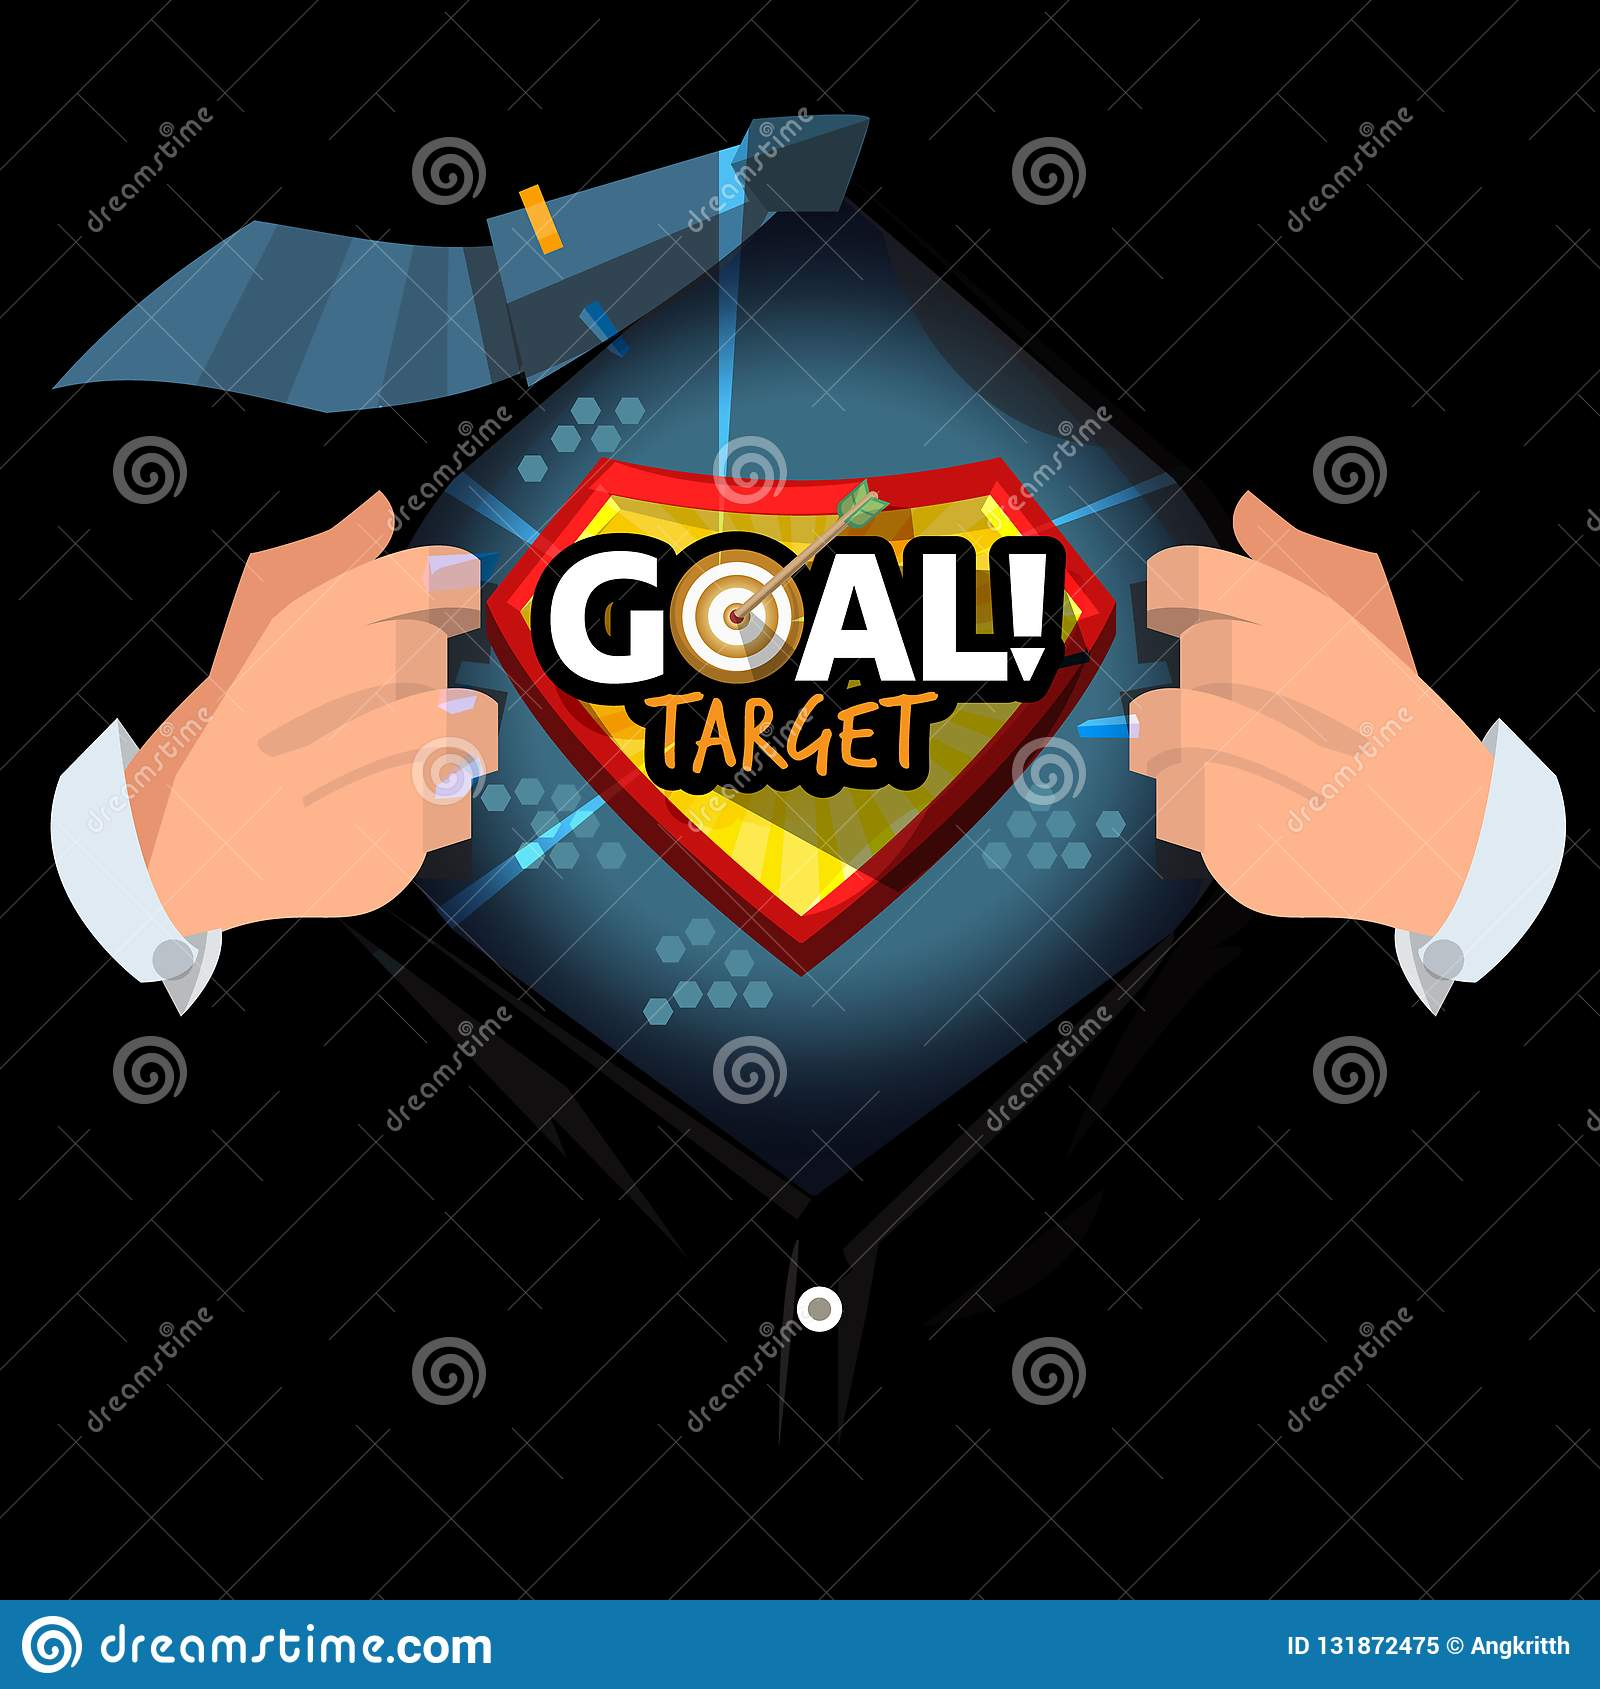 Man open shirt to show `Goal target ` logotype in cartoon style. life or business goal concept - vector